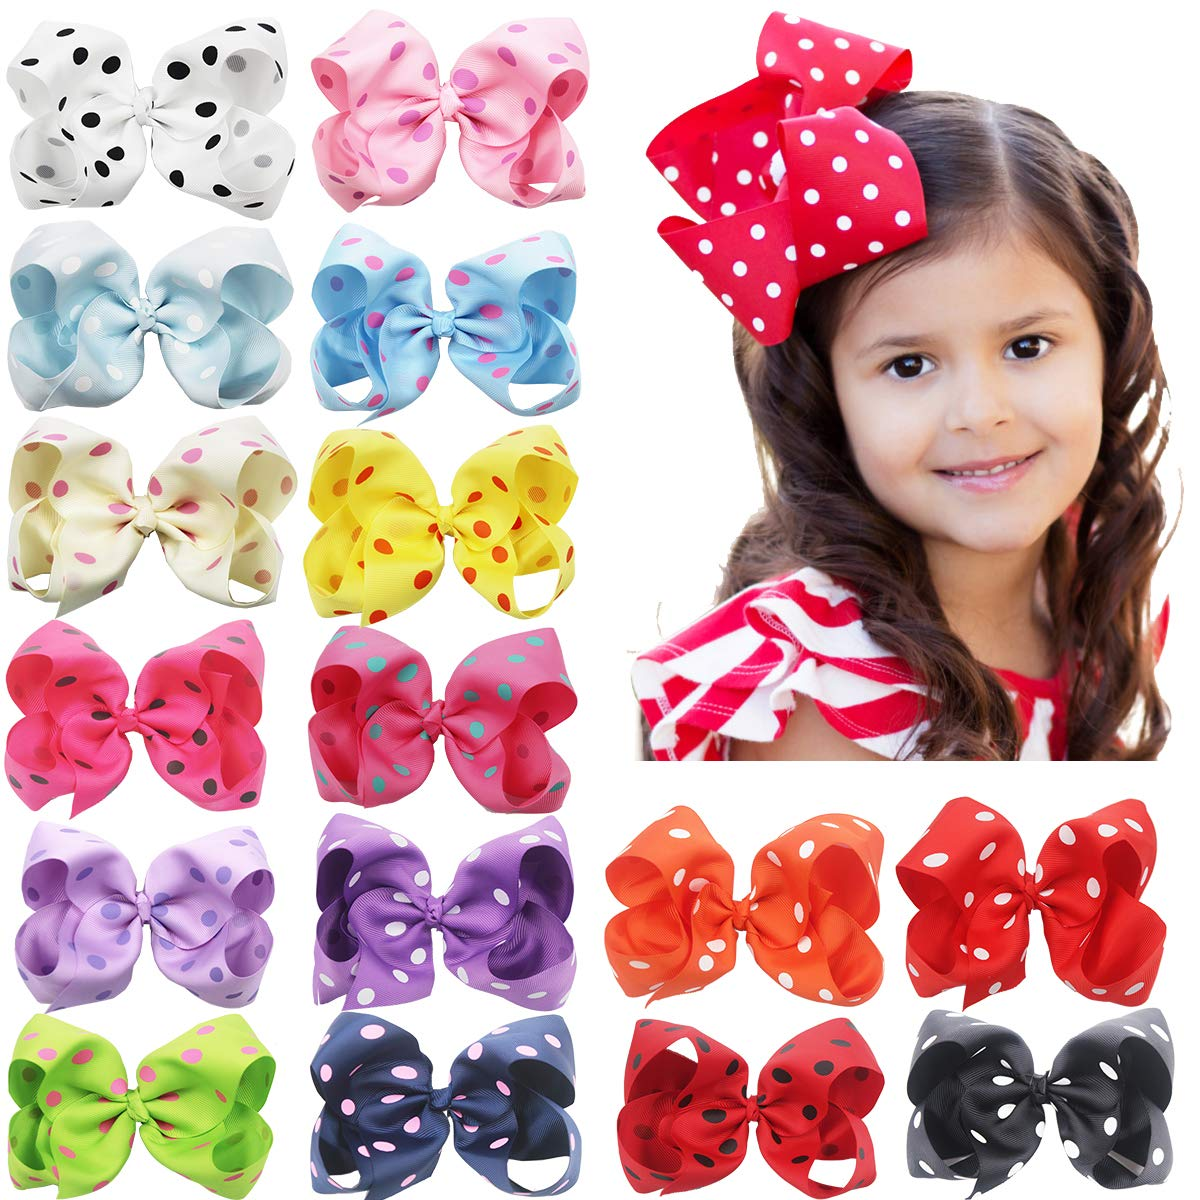 c0e4d4a17 6 Inch Large Big Bows Boutique Grosgrain Ribbon Polka Dot Bow Alligator Hair  Clips for Baby Girls.